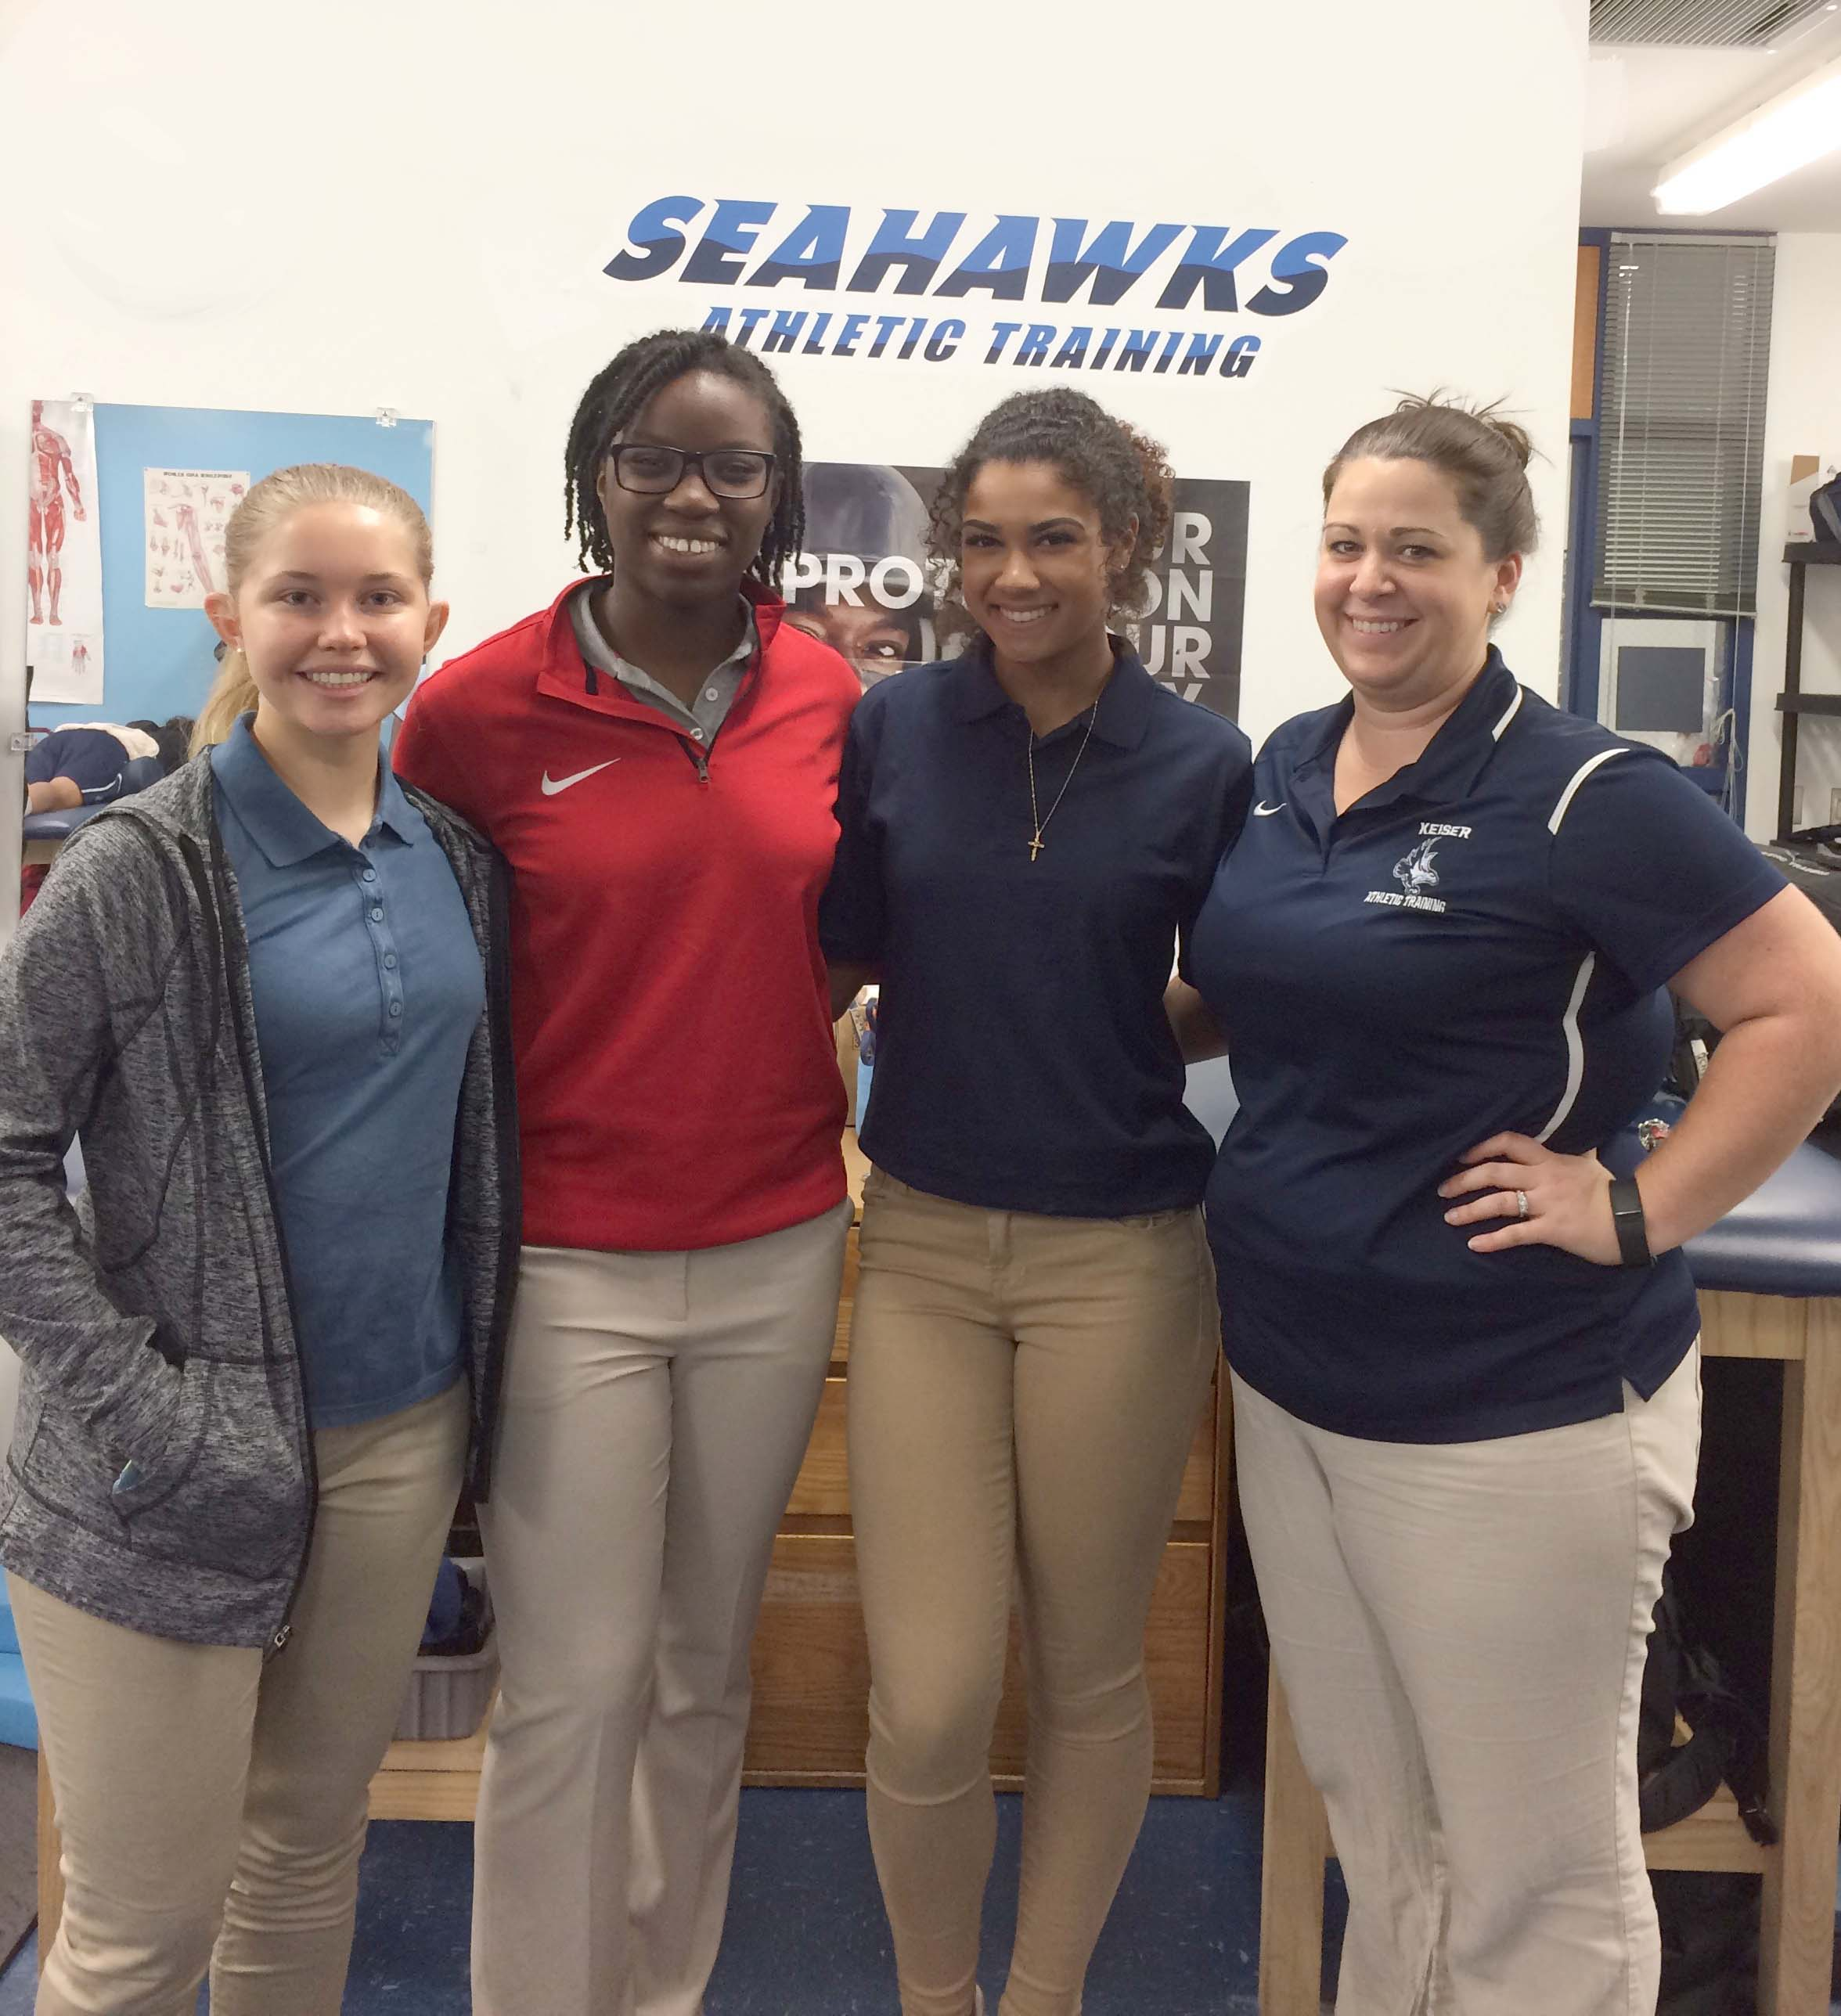 Flagship Athletic Training Department Welcomes High School Students for Career Day